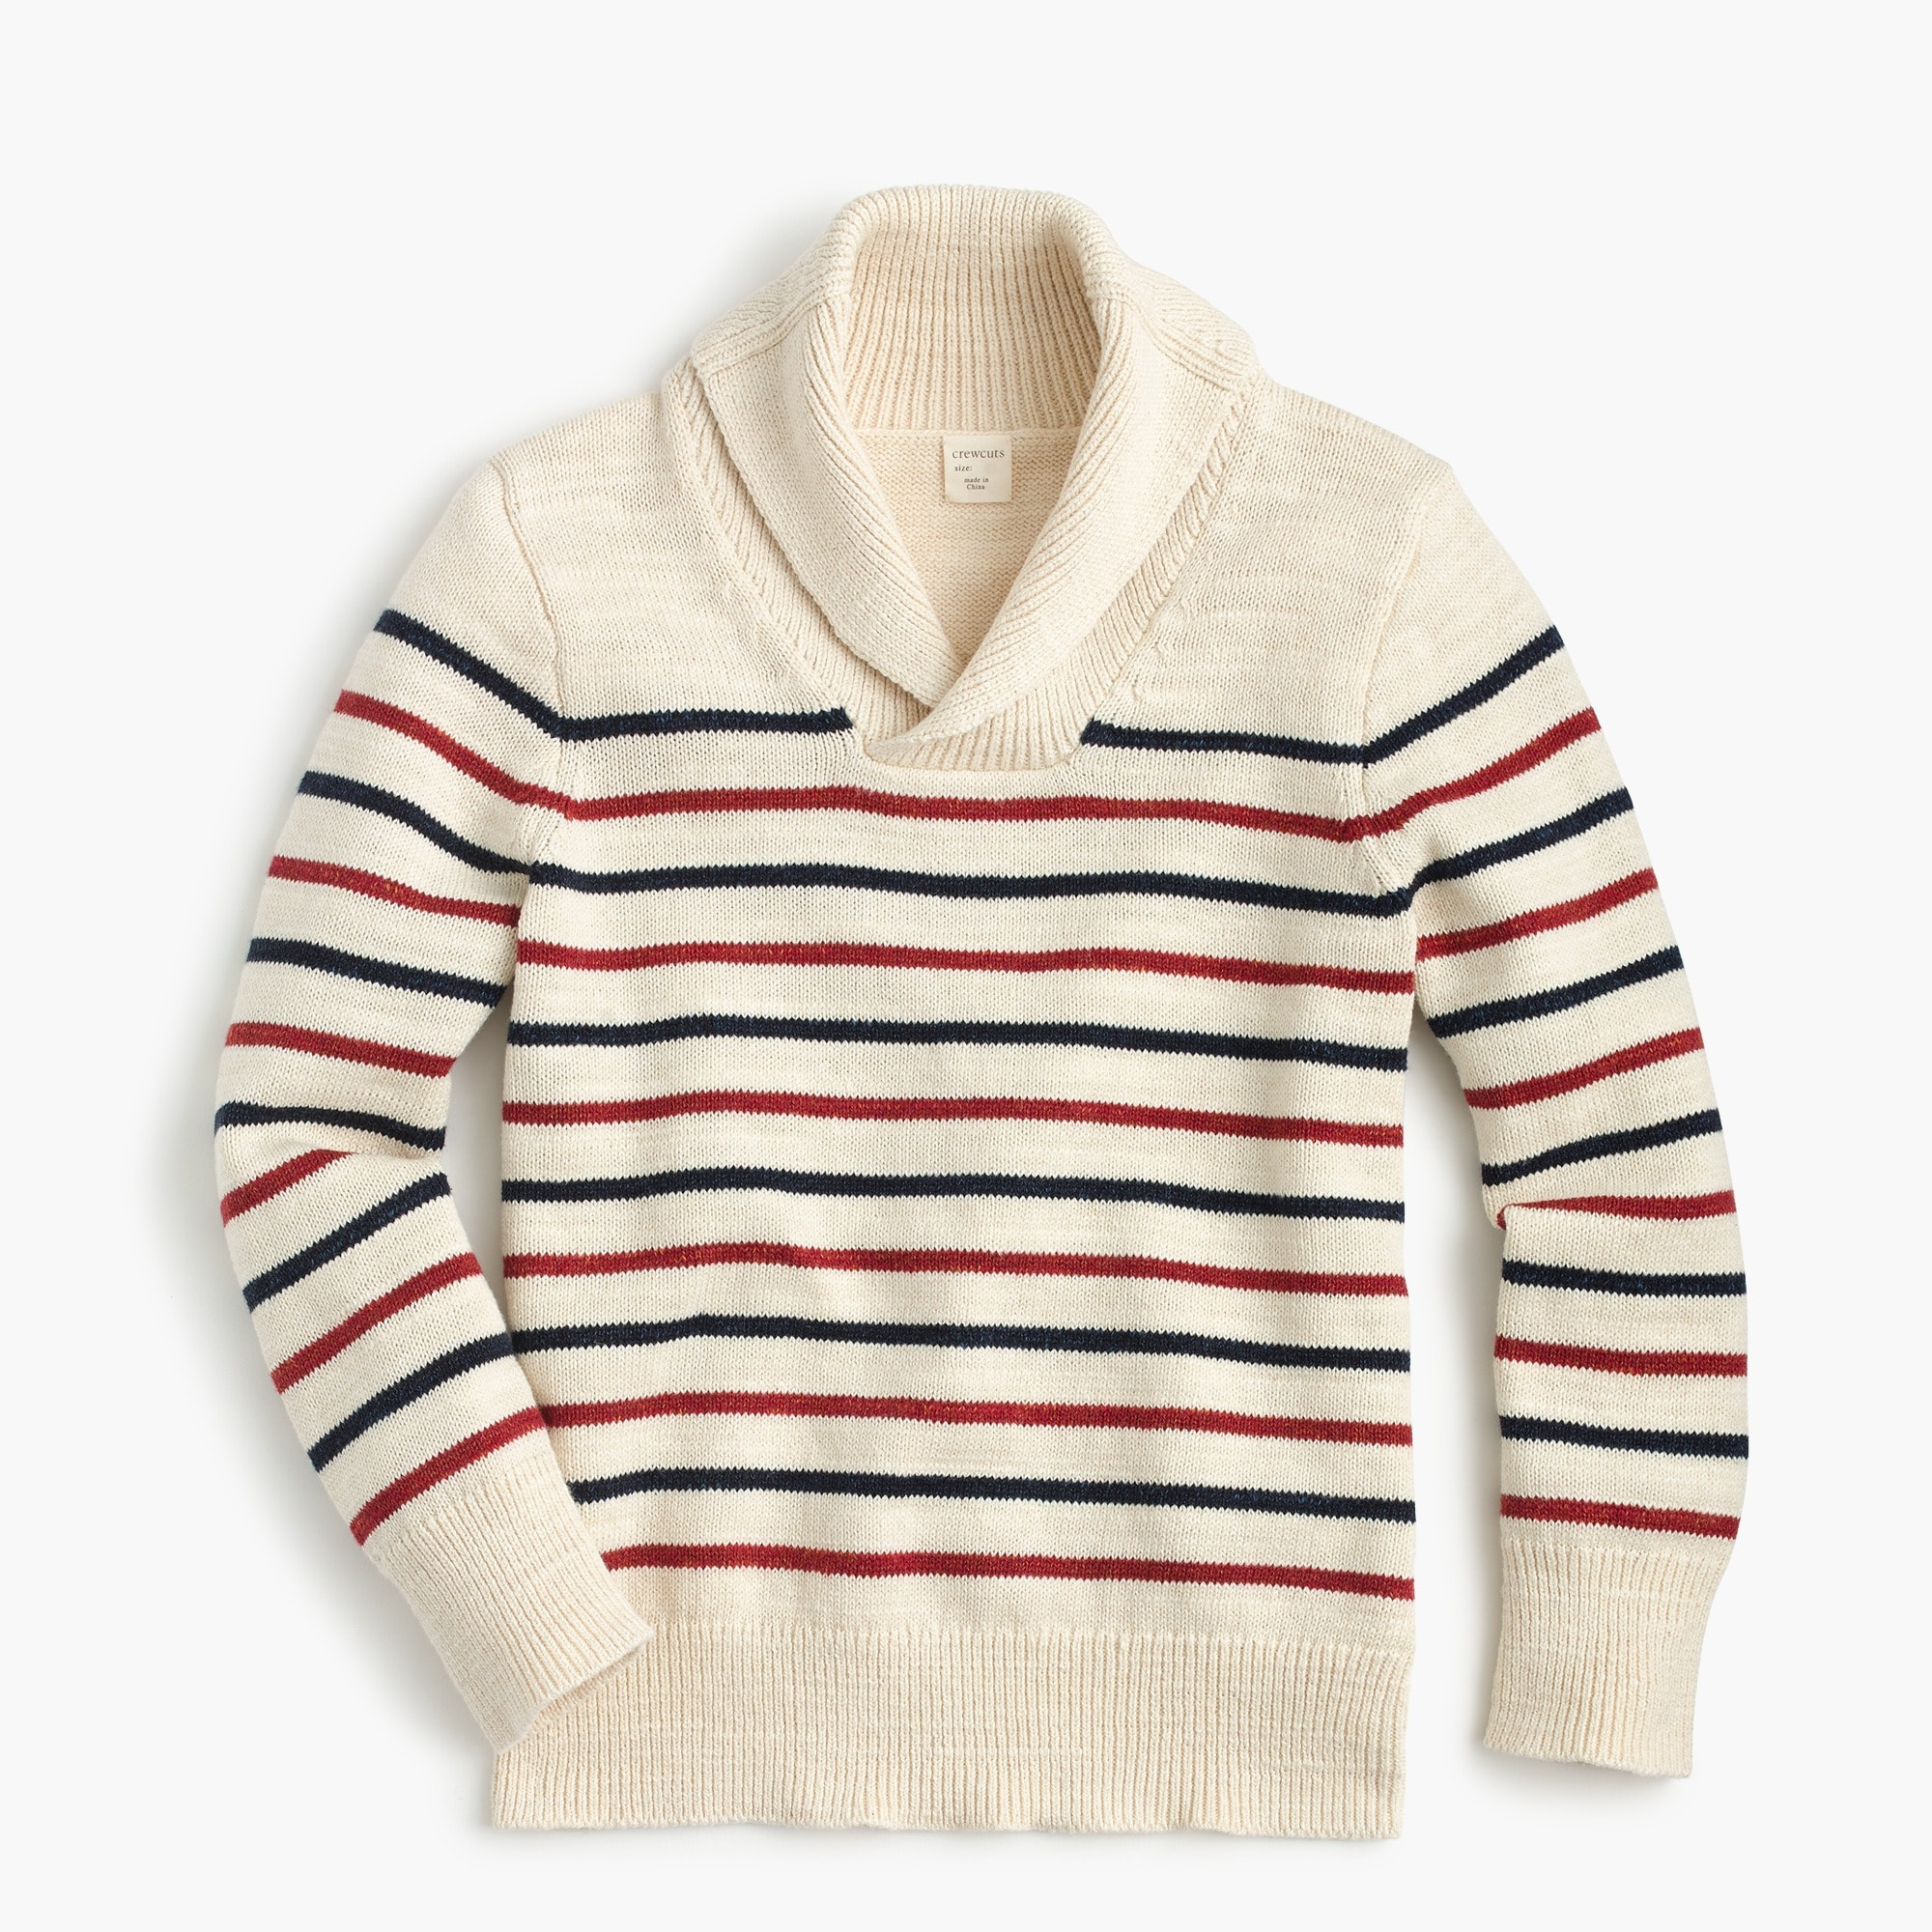 Boys' shawl-collar cotton striped sweater